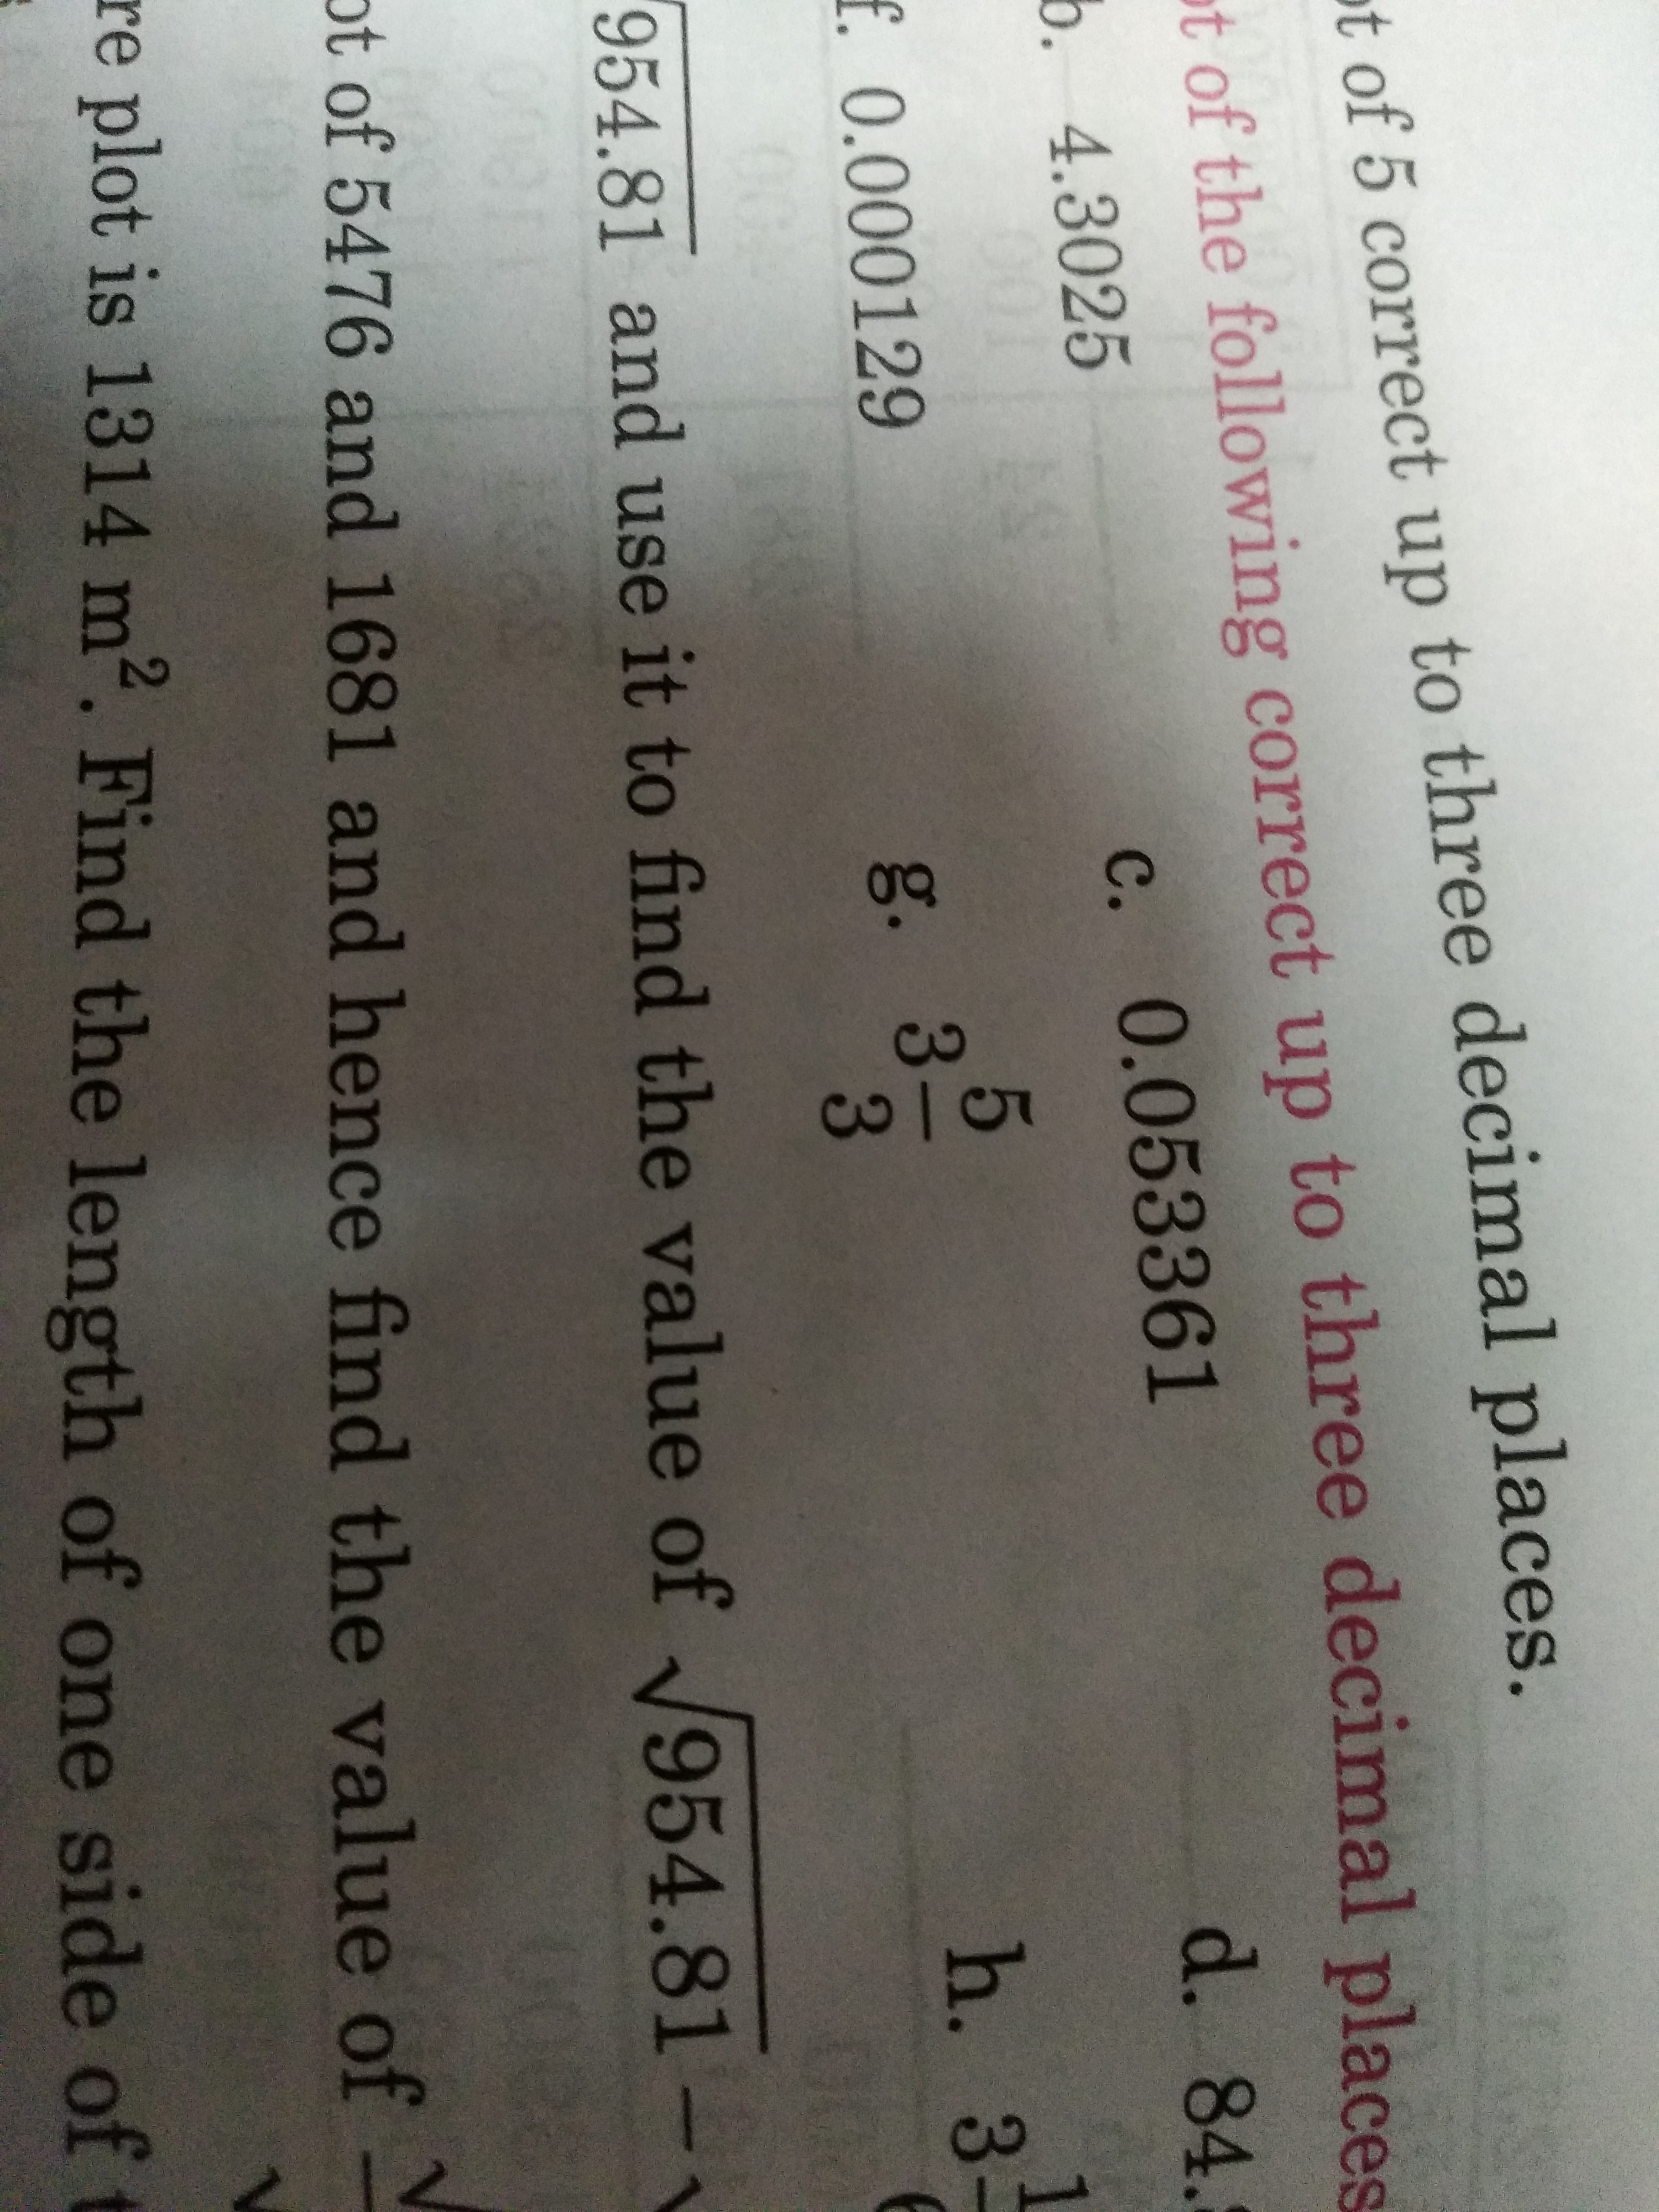 Find The Square Root Of 14 3 Correct Upto Three Decimal Places Plz With Steps Brainly In